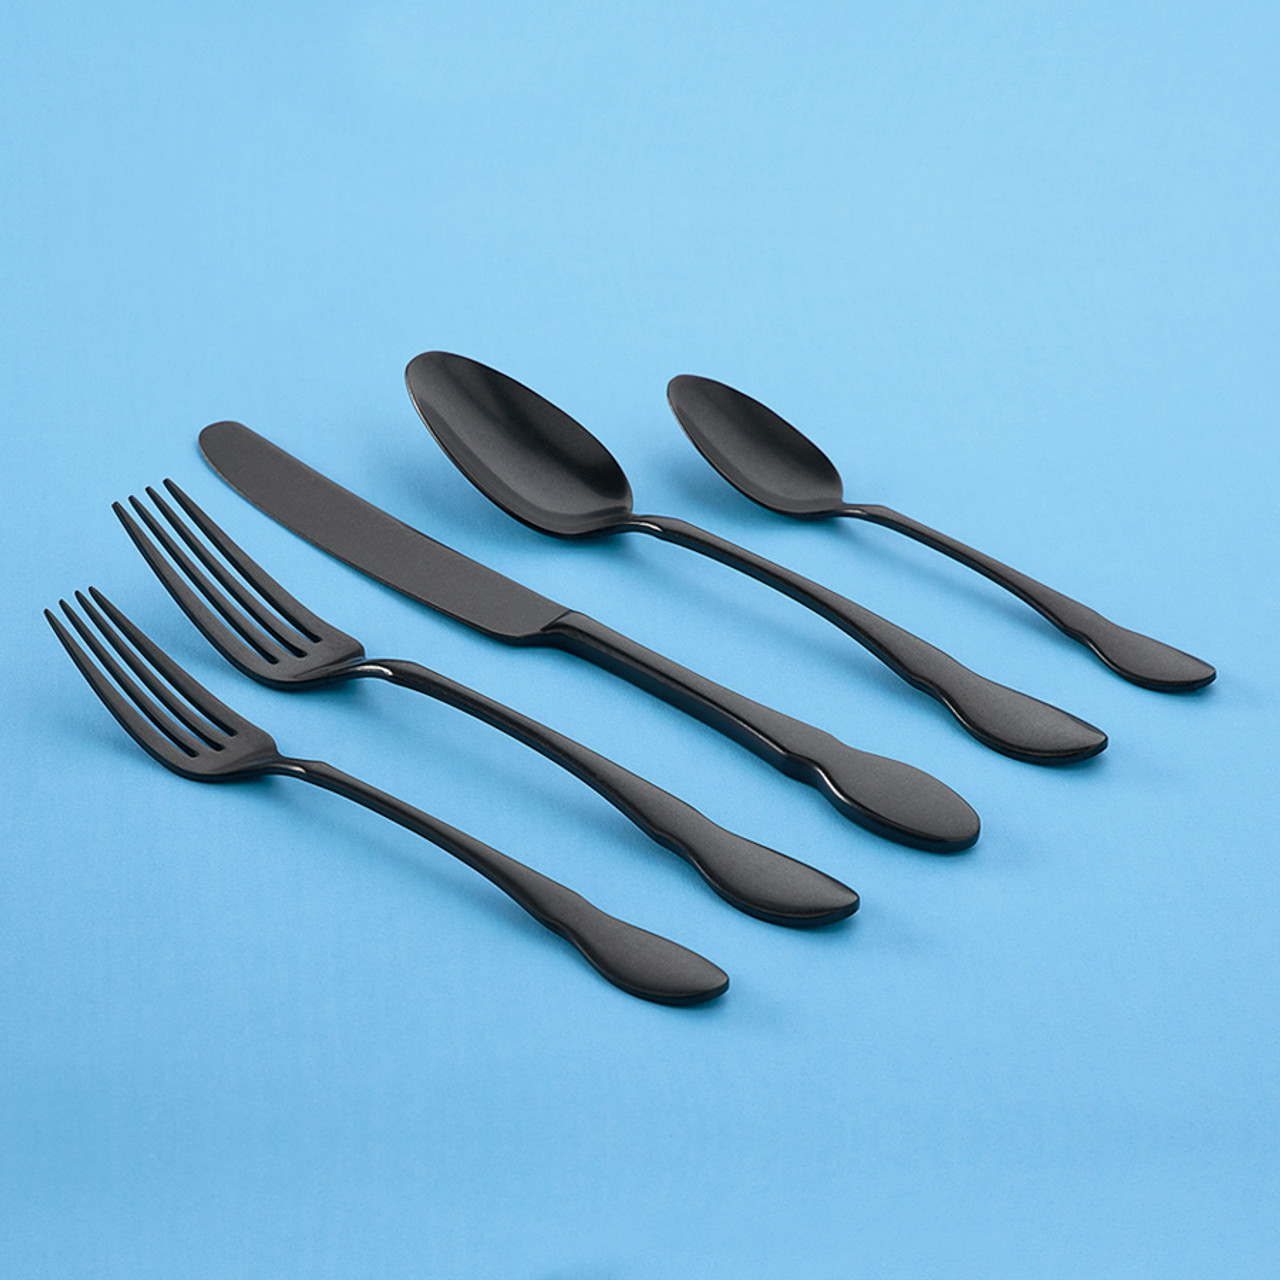 Ebony - 20 piece set